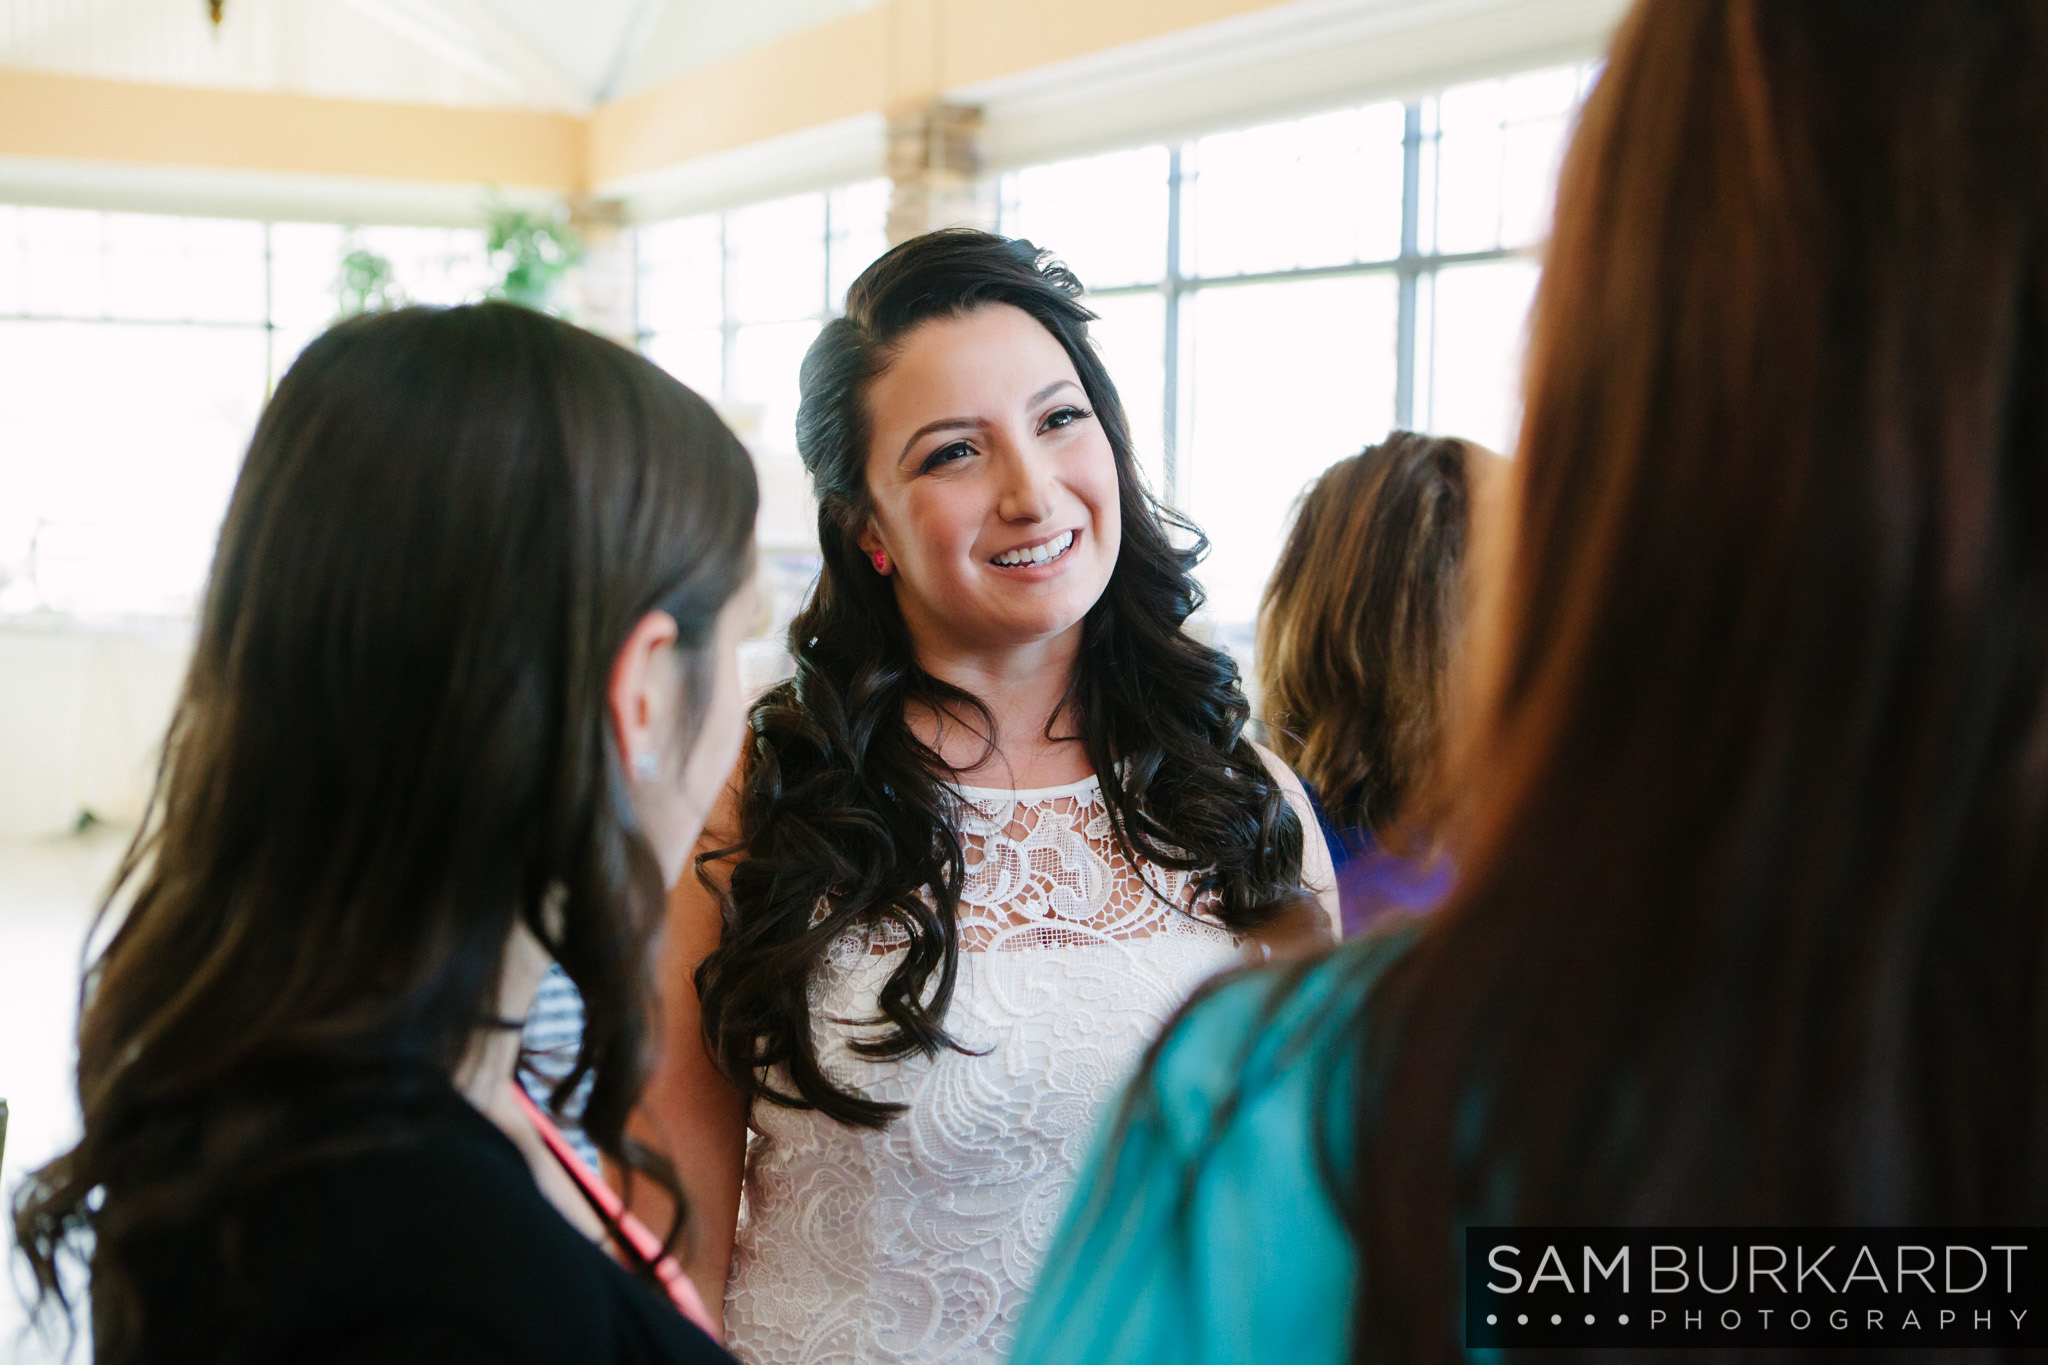 samburkardt_bridal_shower_trumbull_connecticut_photography_wedding_0030.jpg